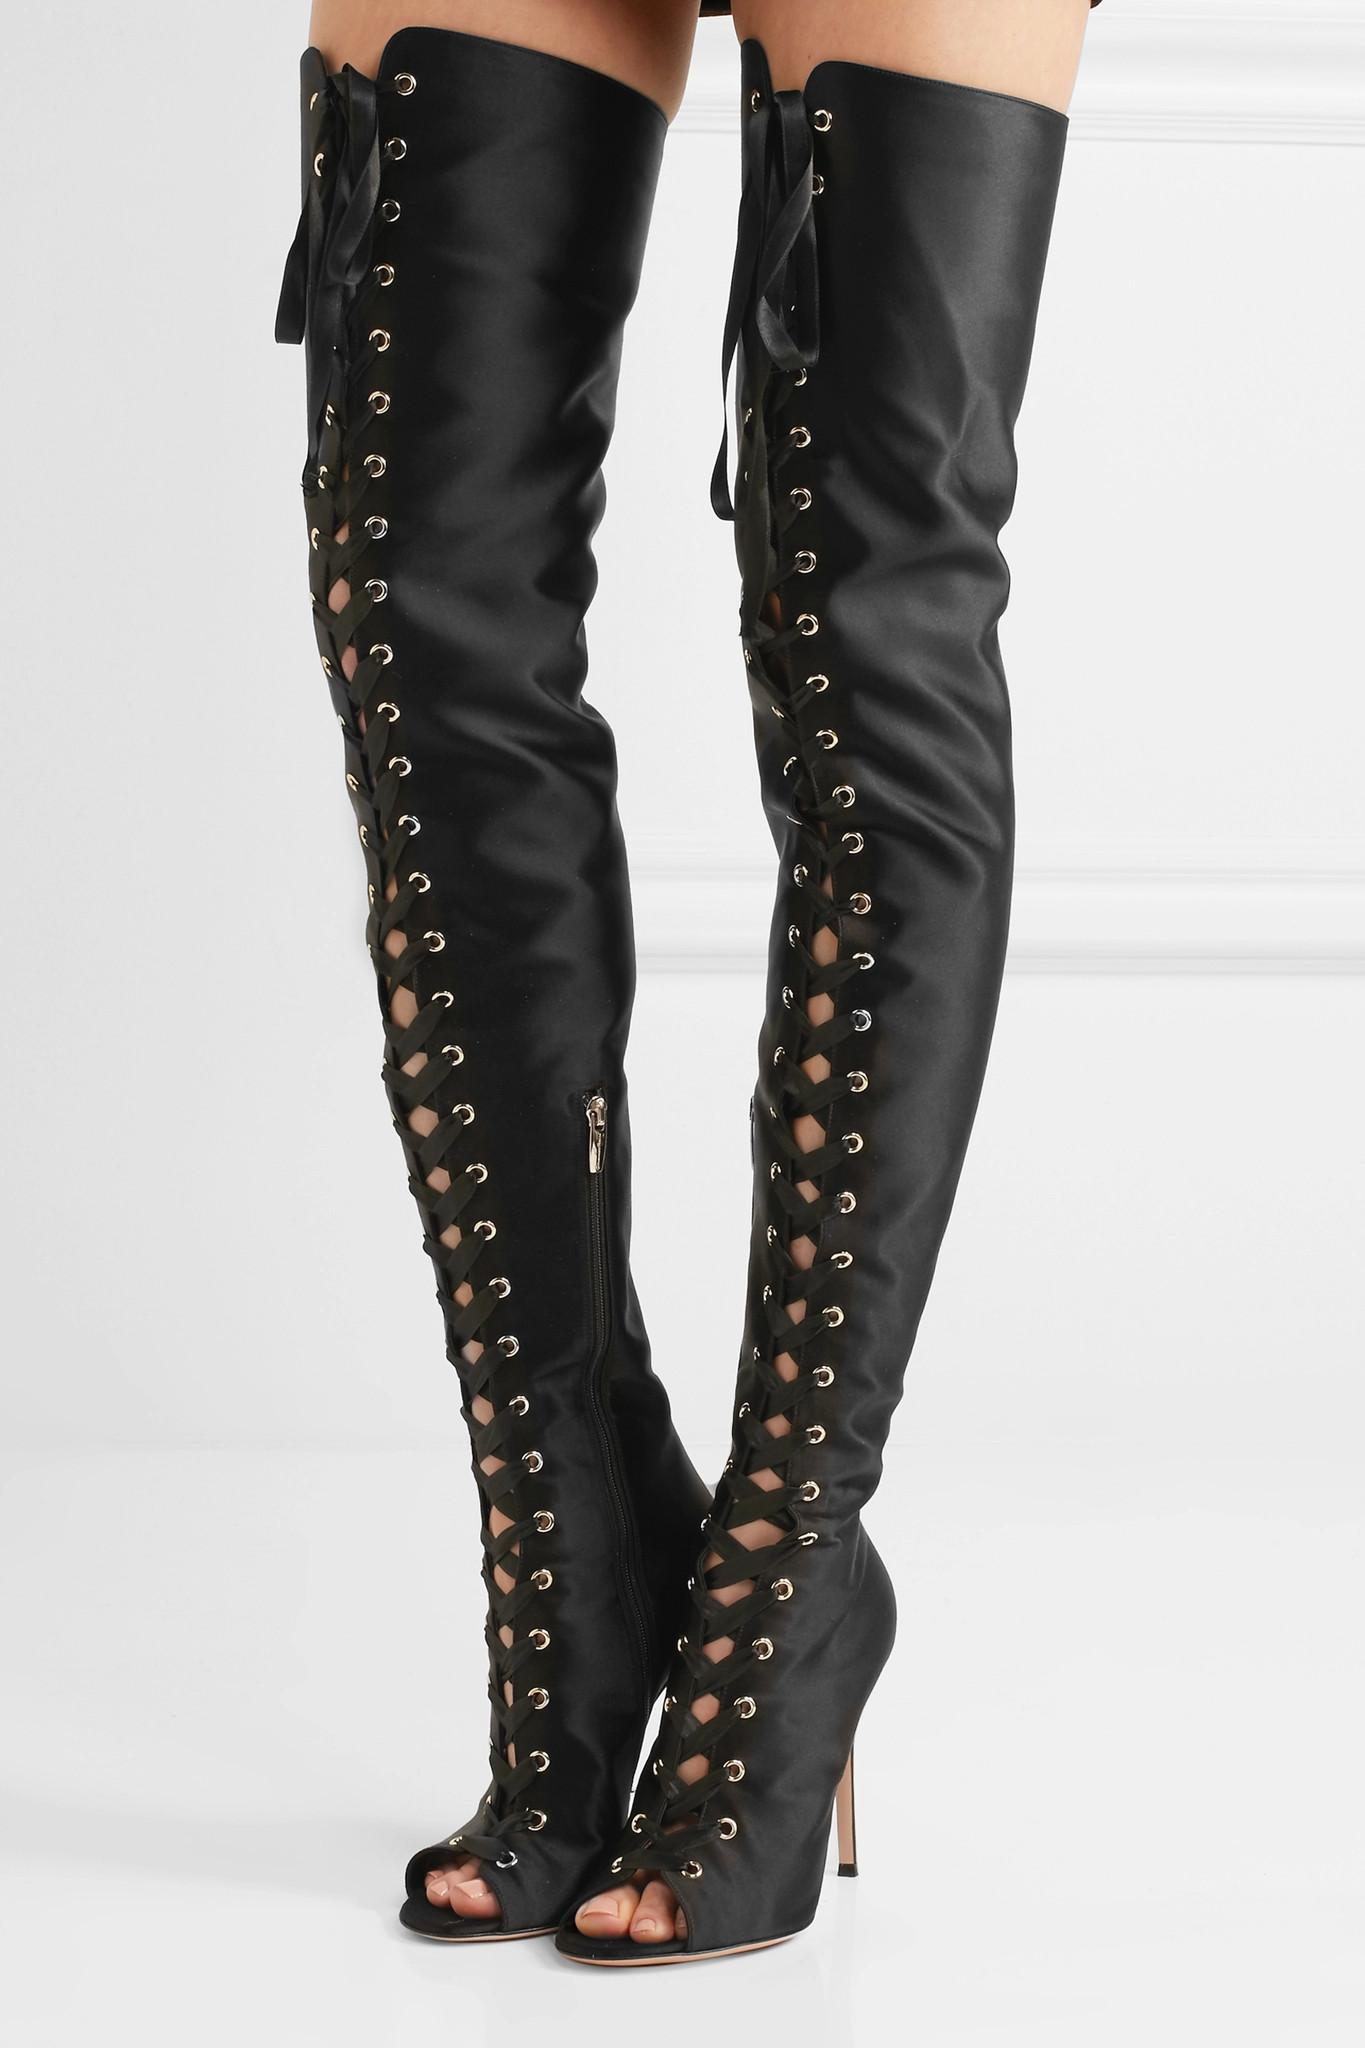 lyst gianvito rossi lace up satin thigh boots in black. Black Bedroom Furniture Sets. Home Design Ideas